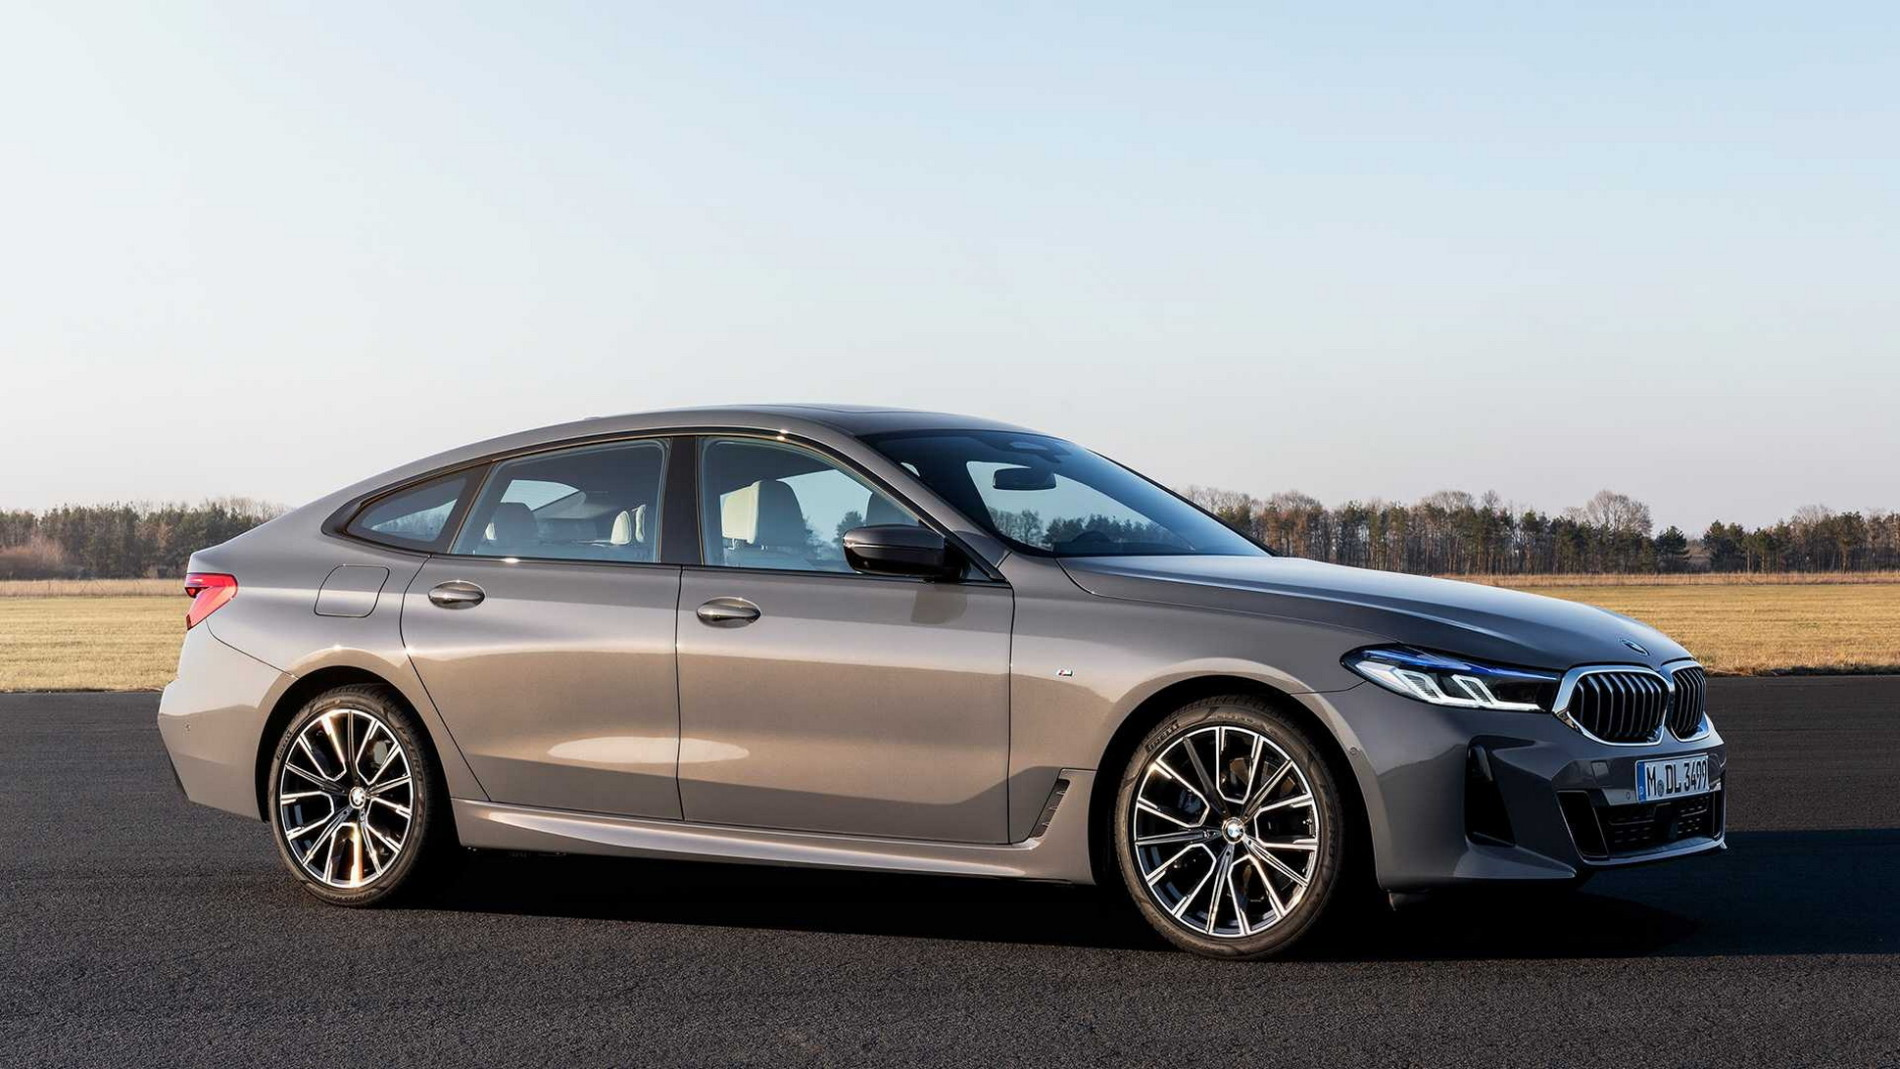 BMW Seria 6 GT Facelift - BMW Seria 6 GT Facelift